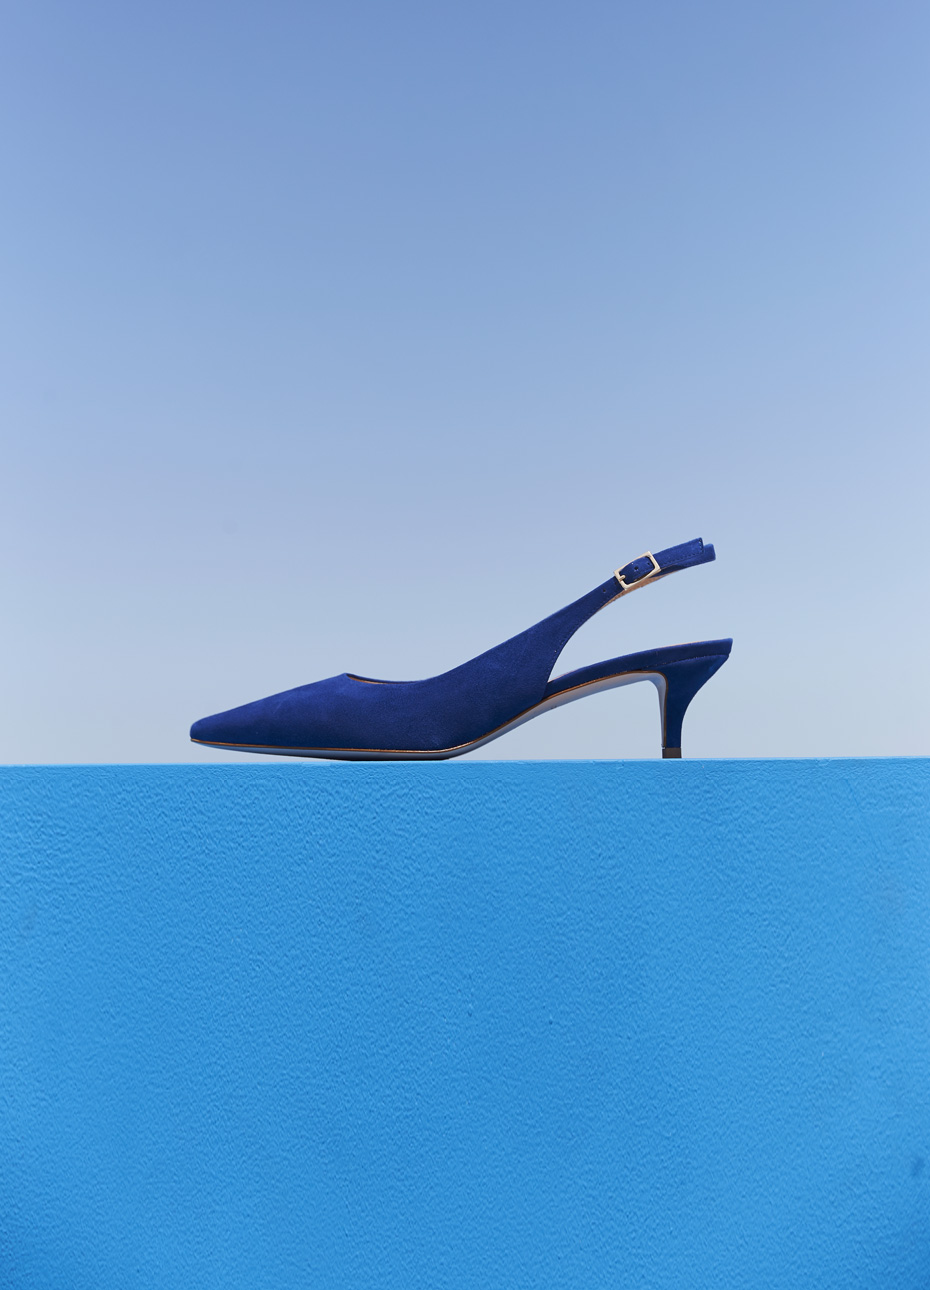 Kitten heeled sandals in blue with a slingback feature by Hobbs. Wear with neutral toned occasion dresses and trouser suits.